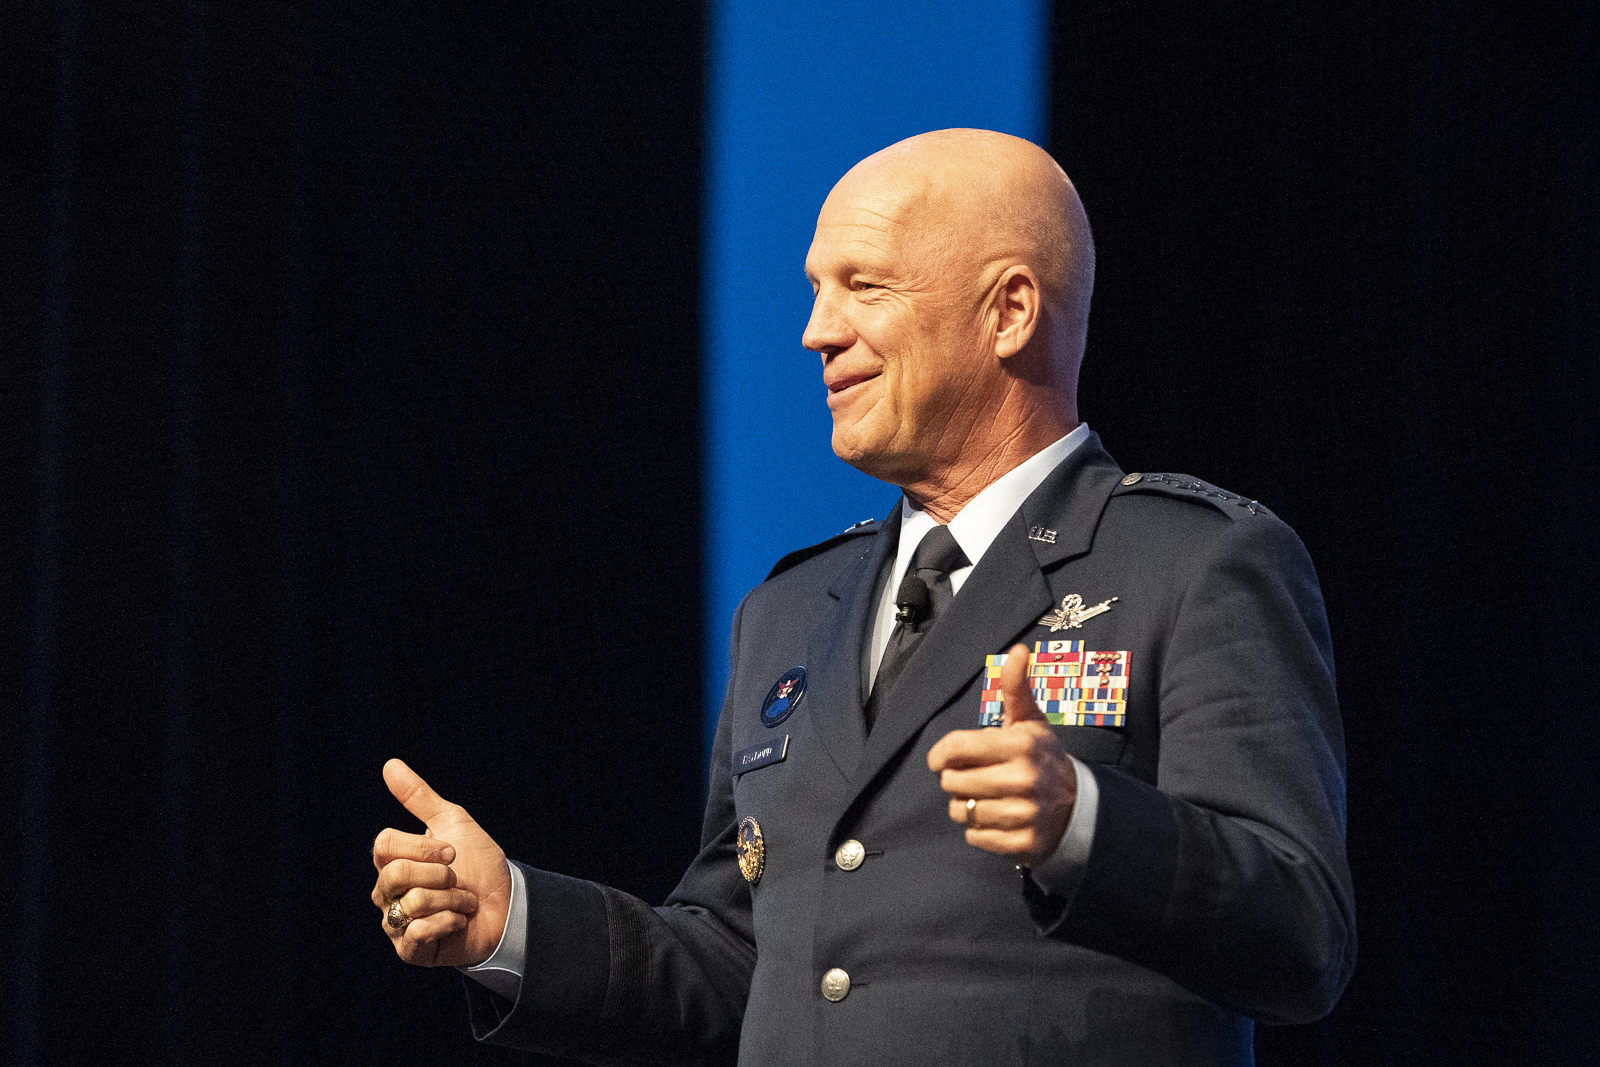 Space Command Chief: Developing 'Space Warfighters' Is a Priority